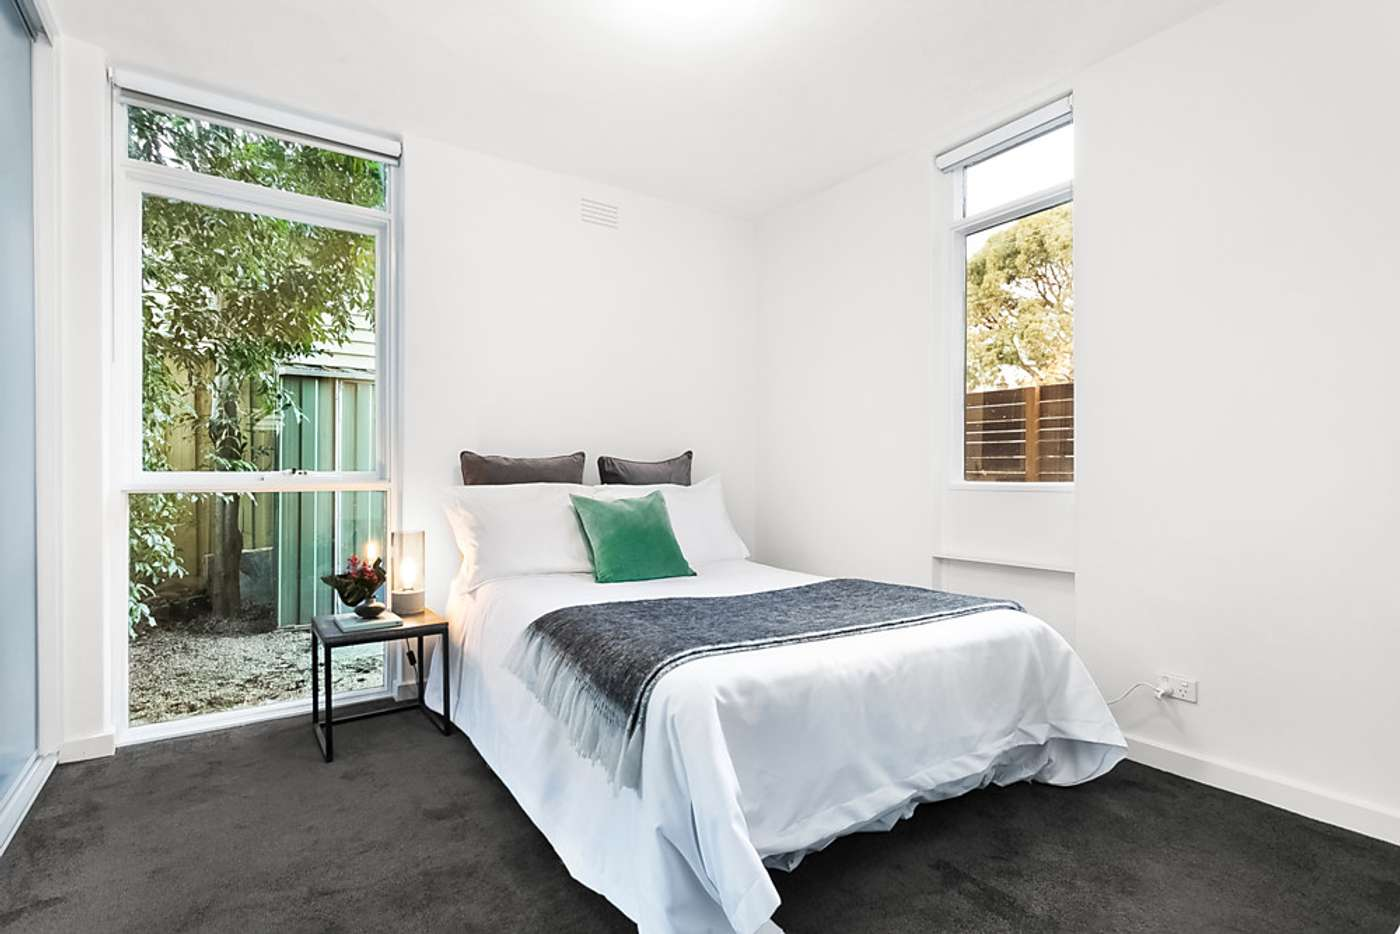 Sixth view of Homely apartment listing, 1/38 Lynch Street, Footscray VIC 3011